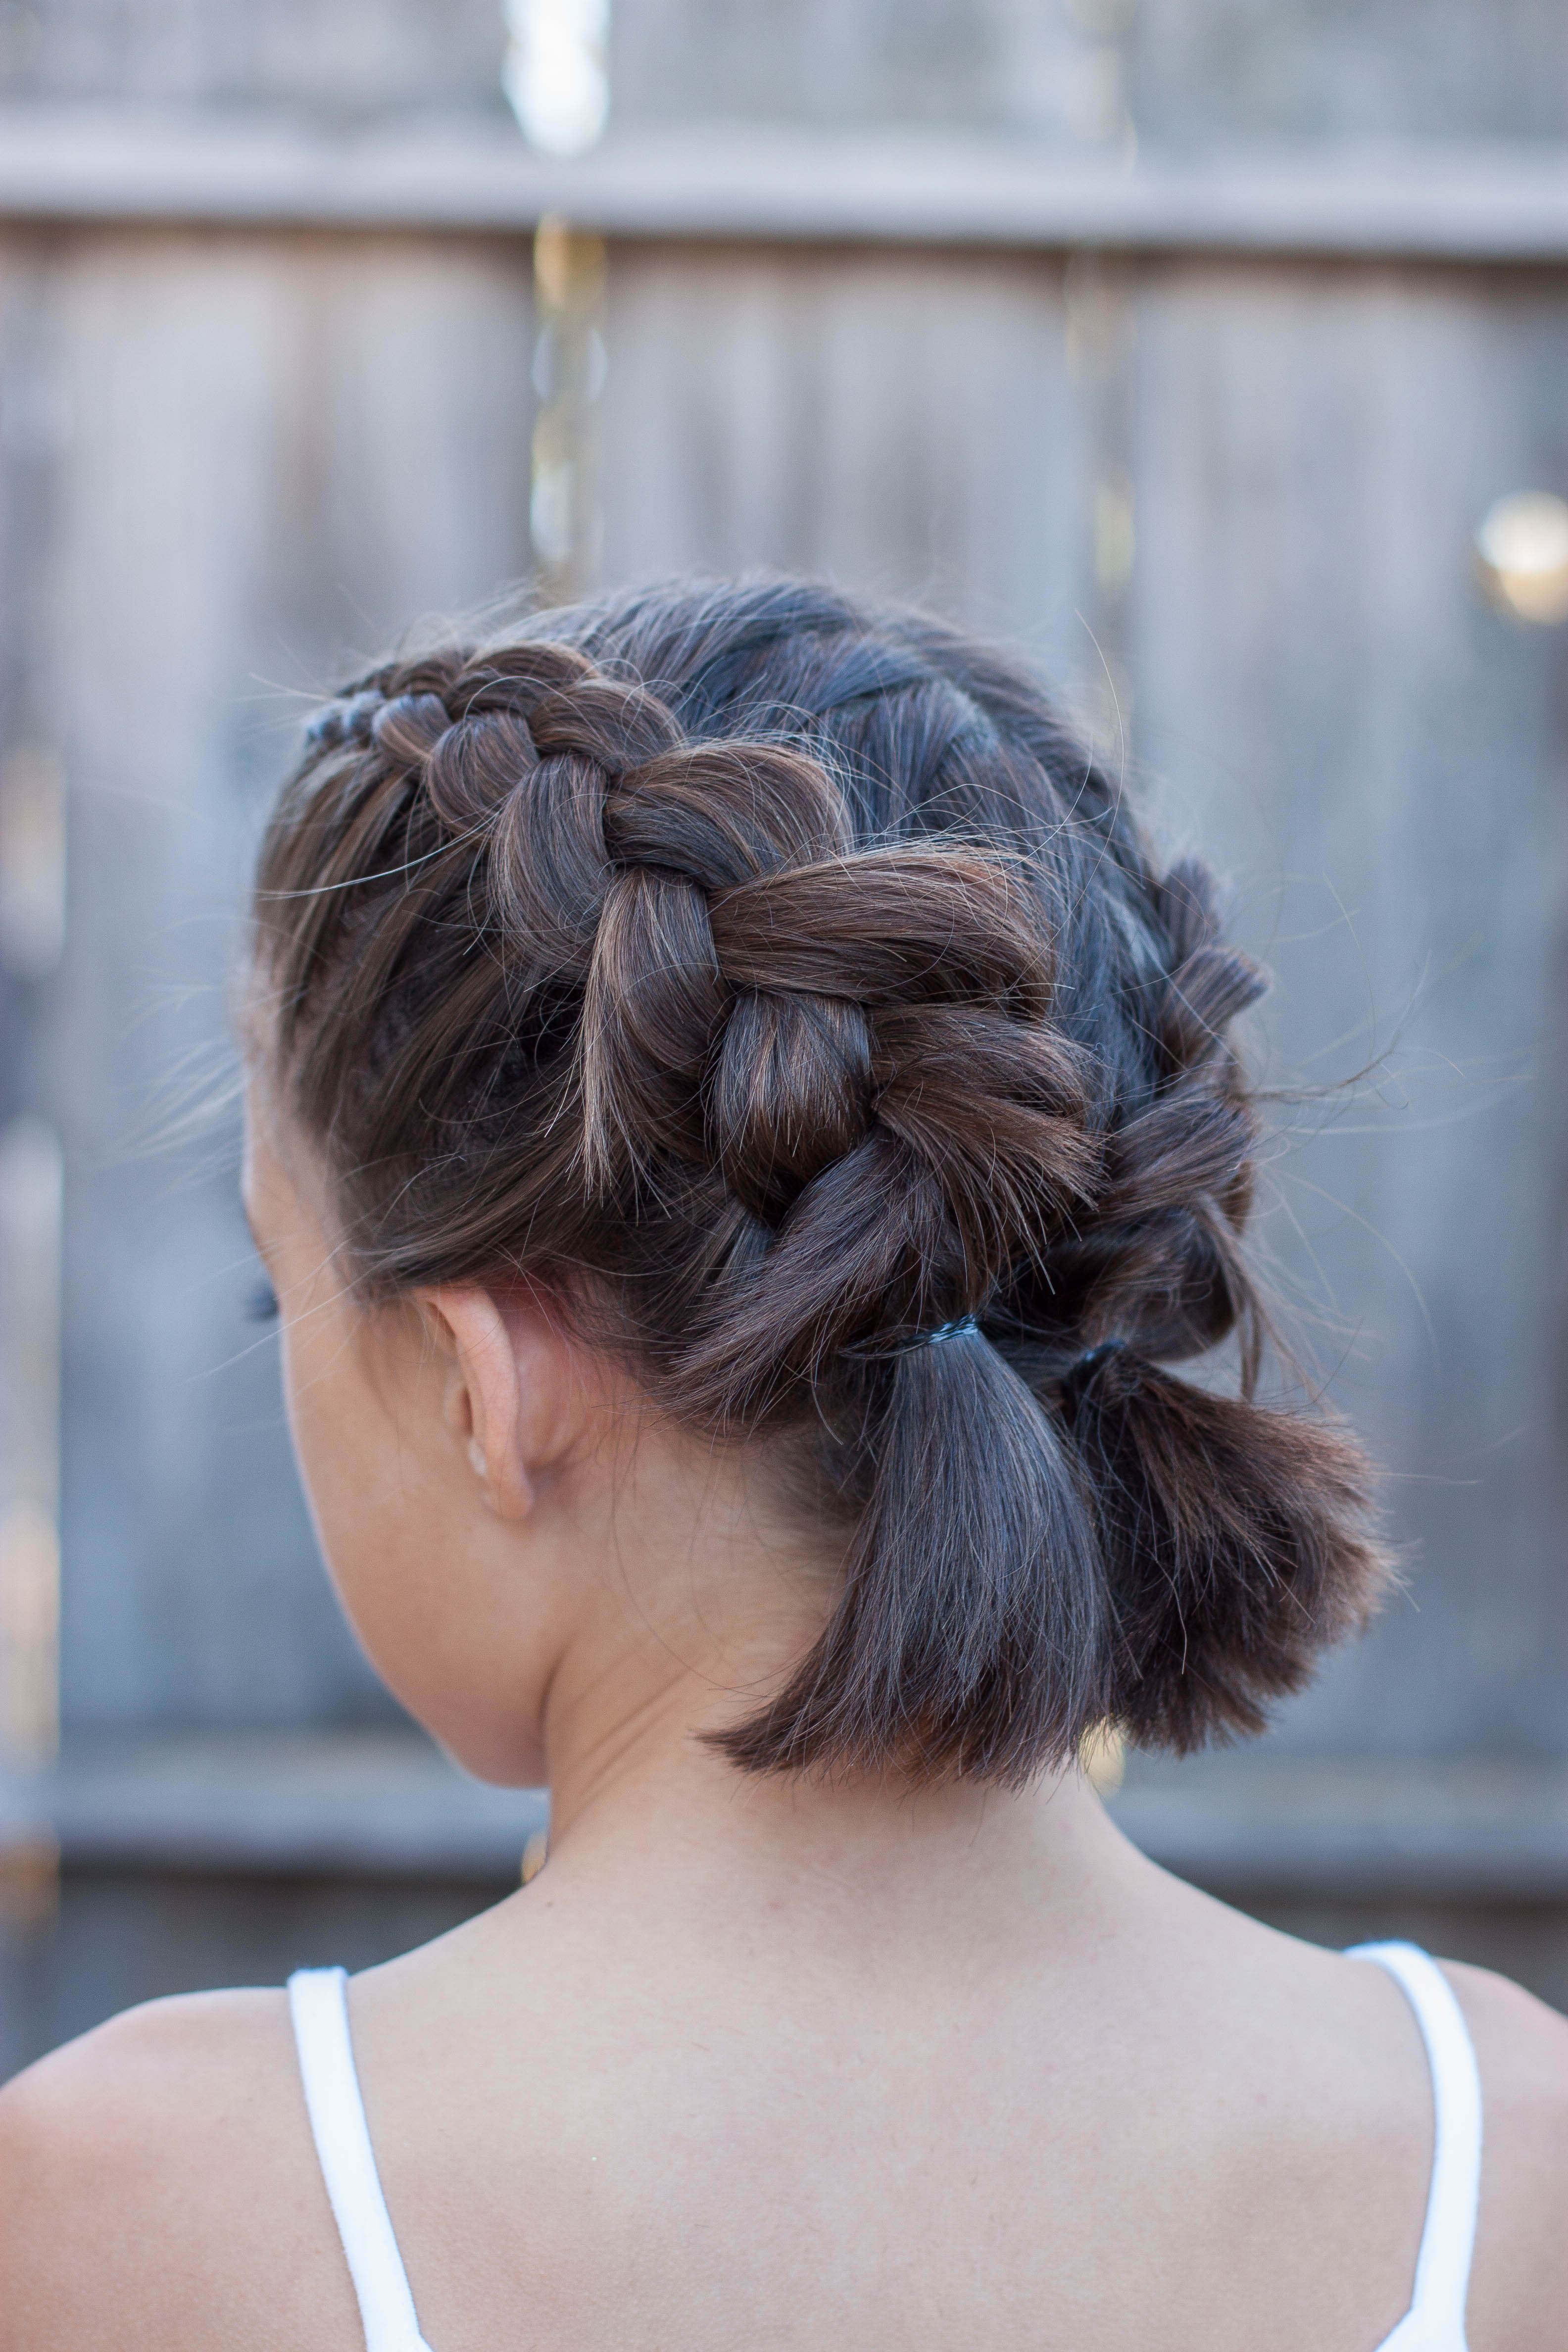 5 Braids For Short Hair (View 14 of 20)